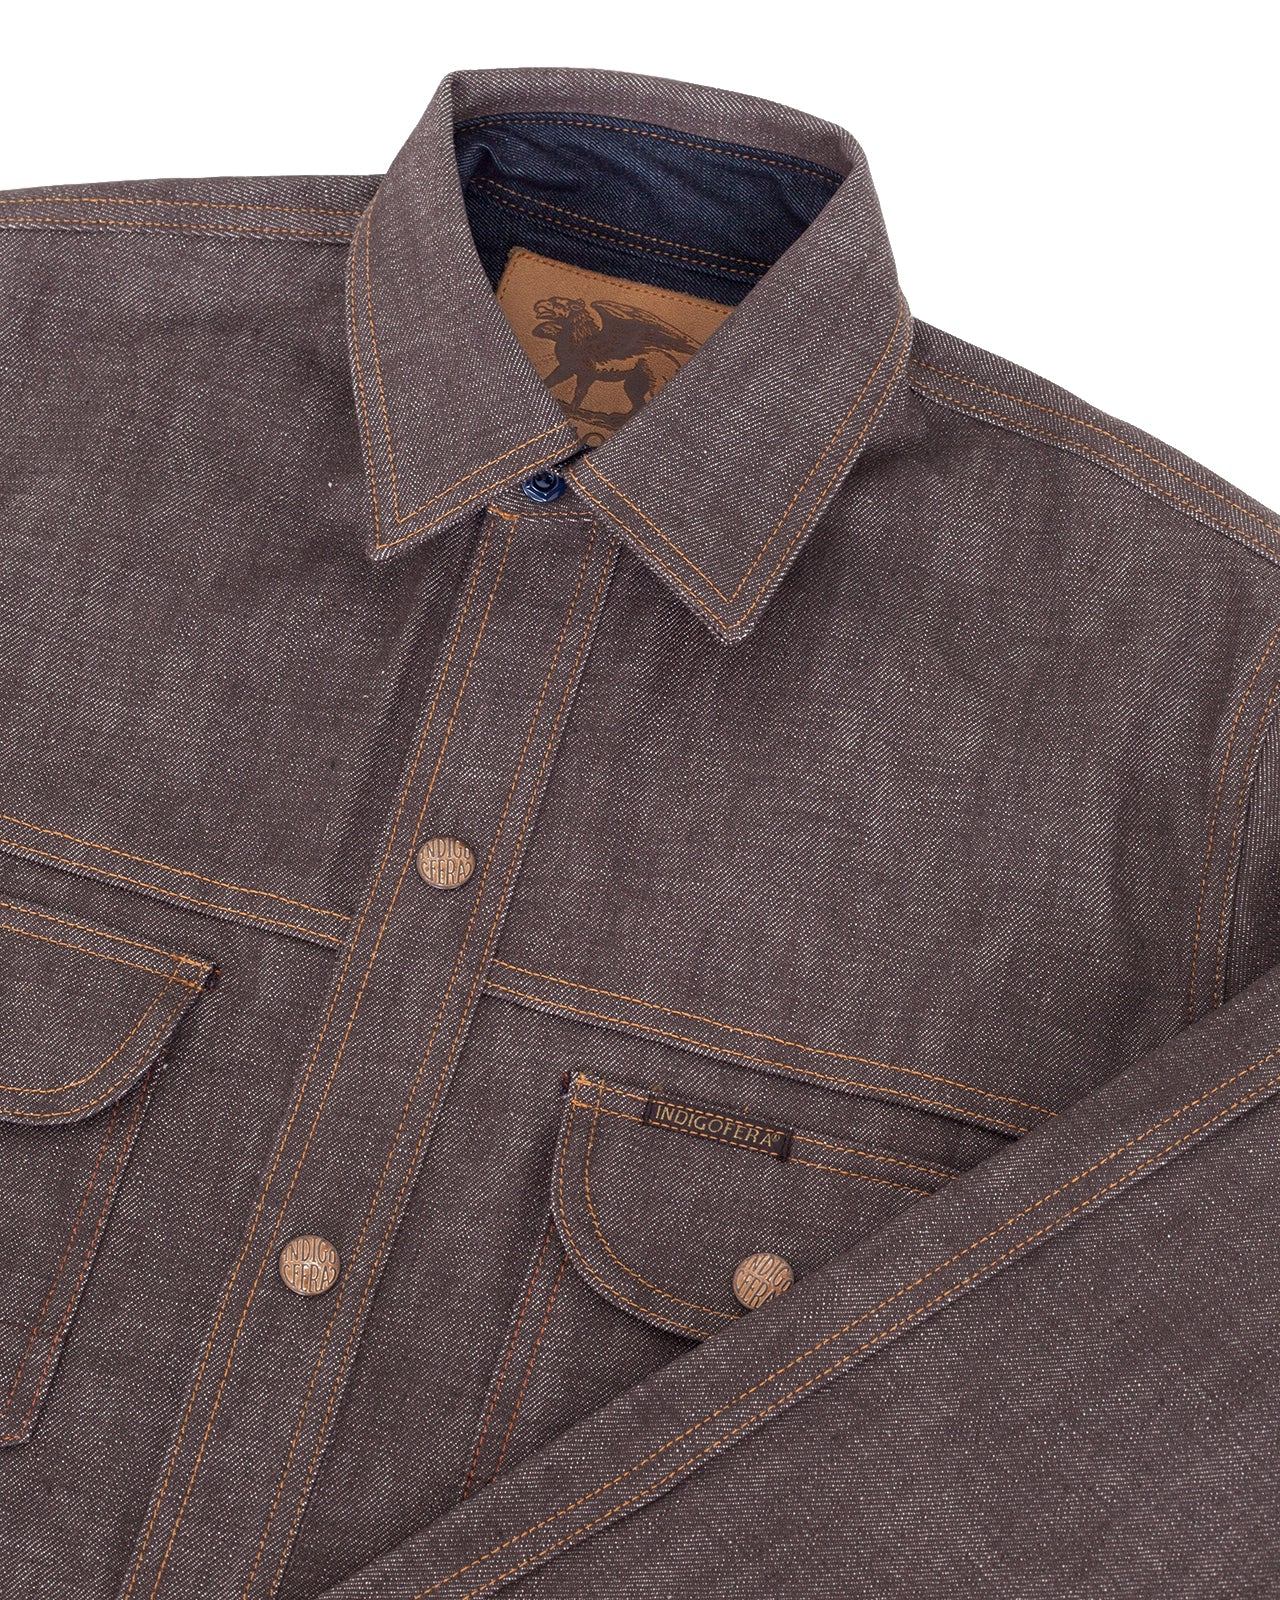 Indigofera Fargo Shirt, Low Desert Denim